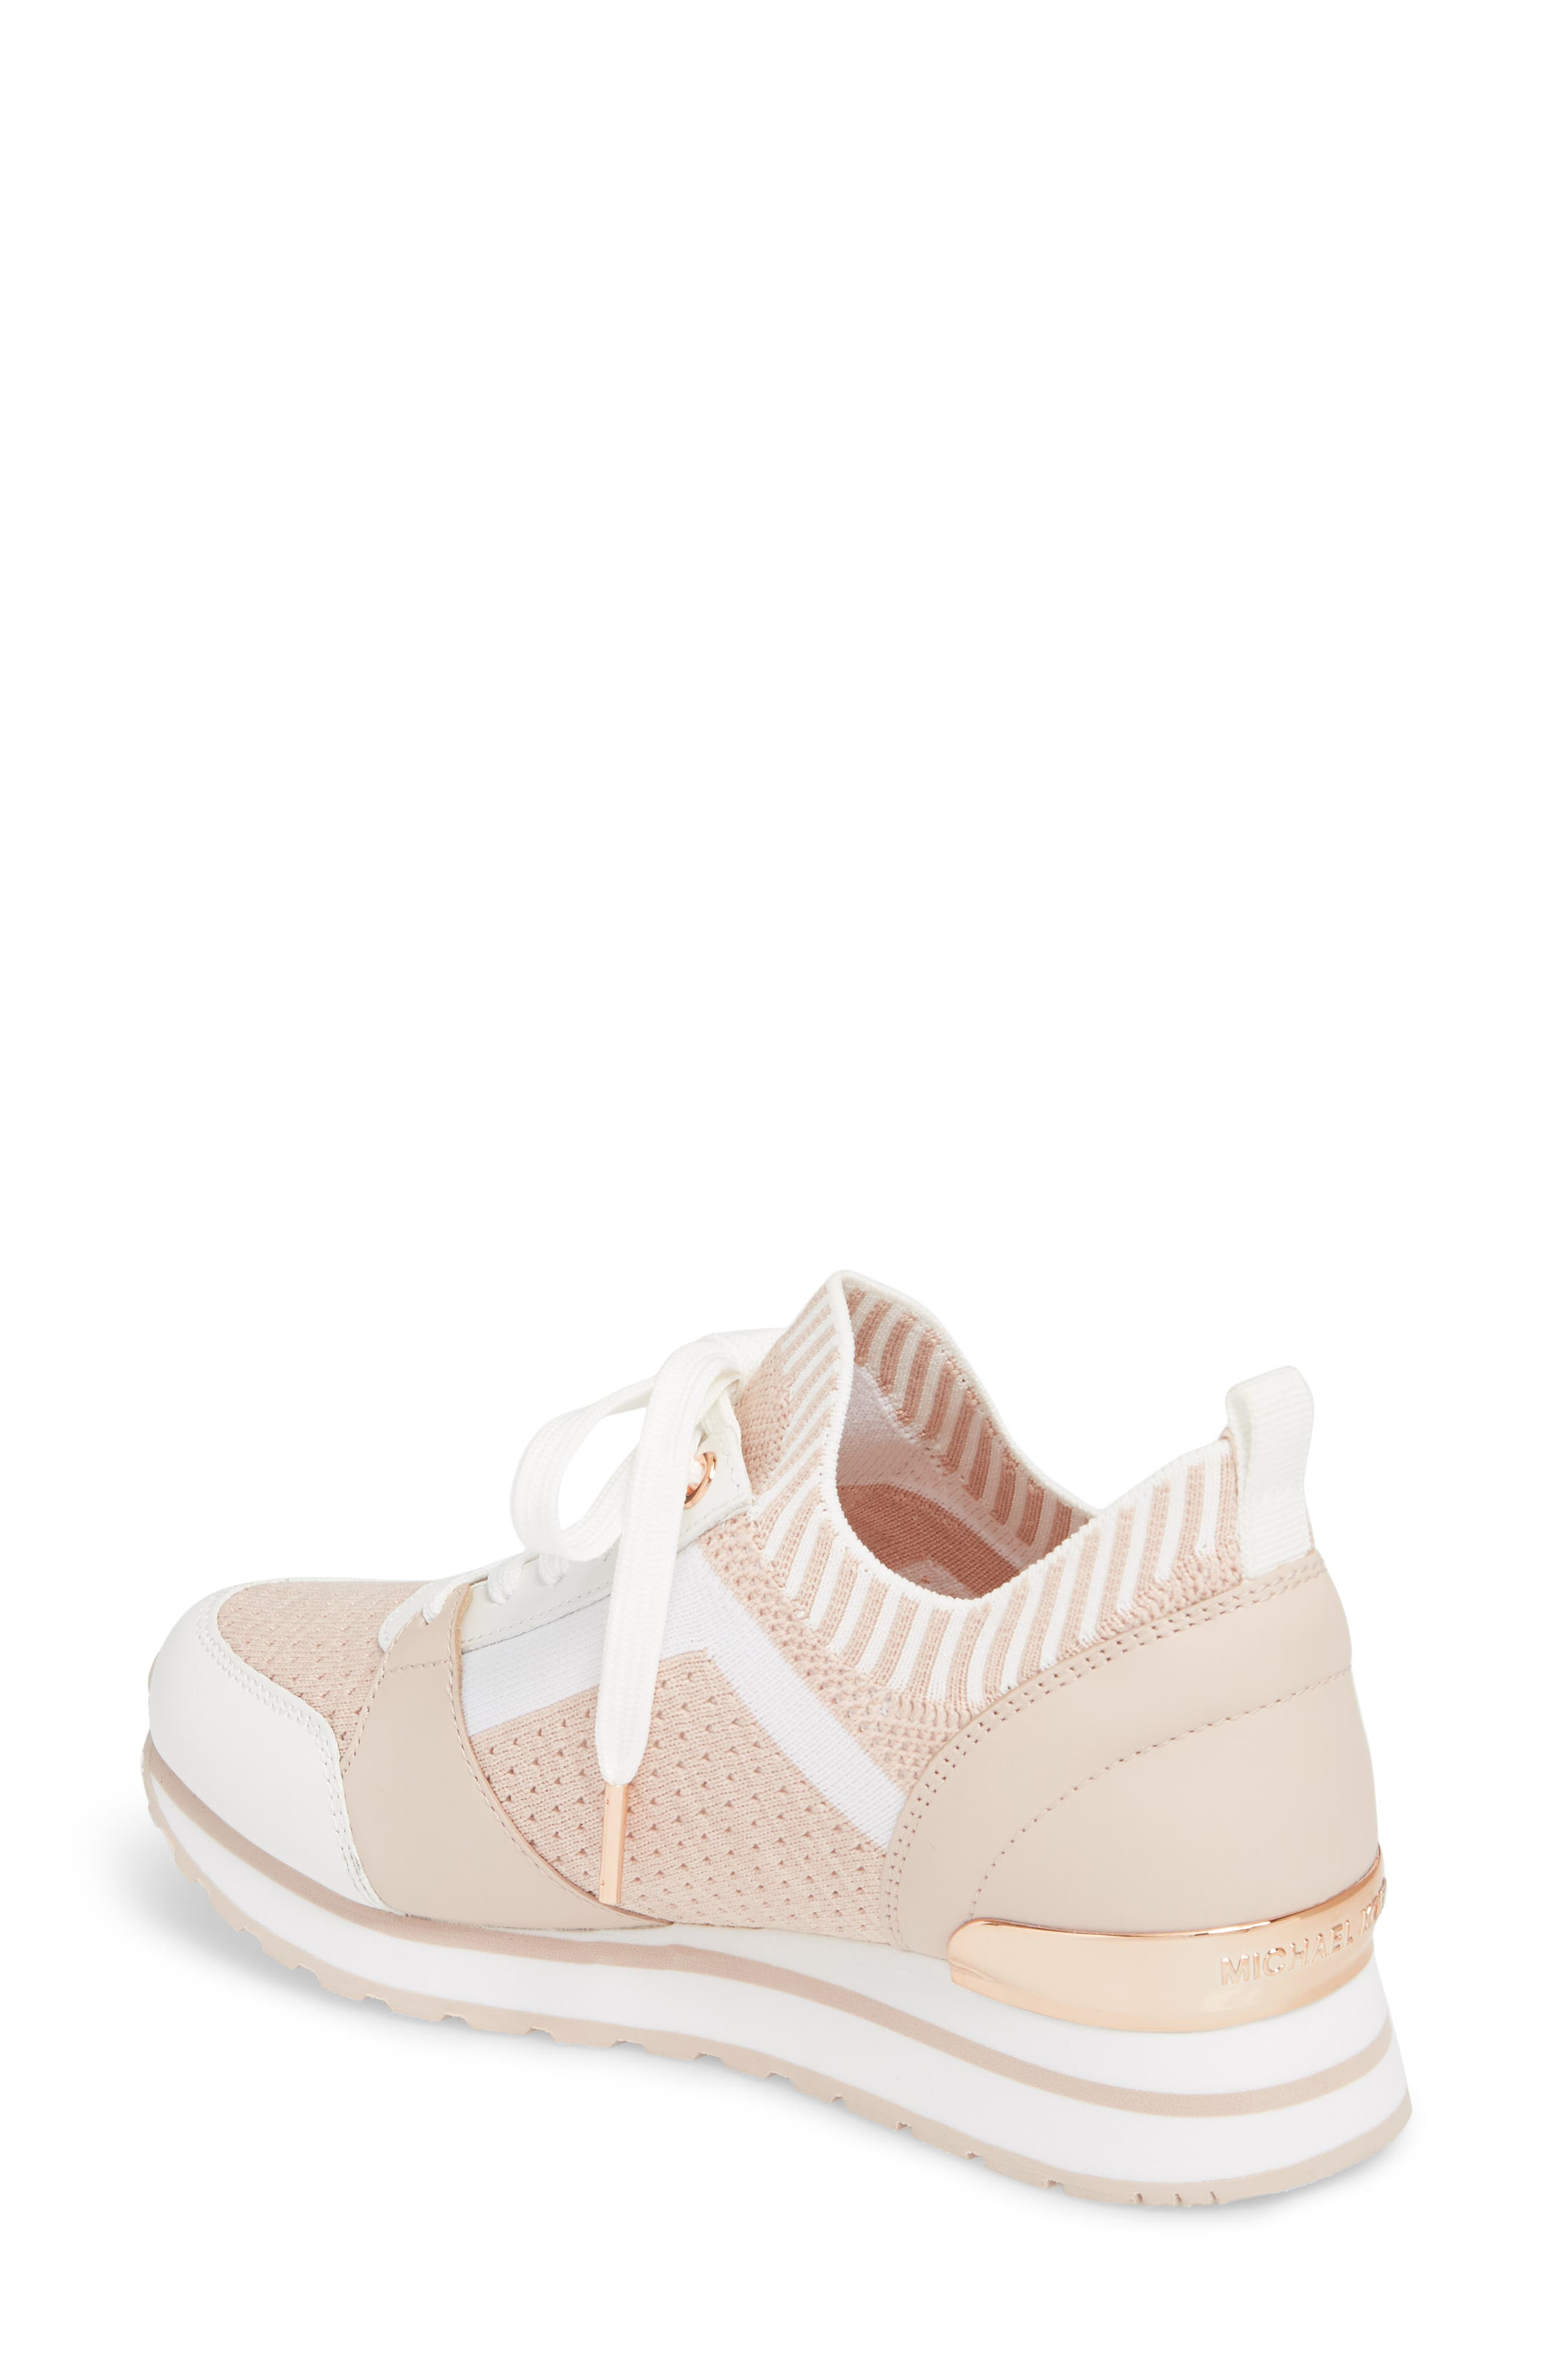 Billie Perforated Sneaker,                             Alternate thumbnail 2, color,                             Soft Pink Fabric